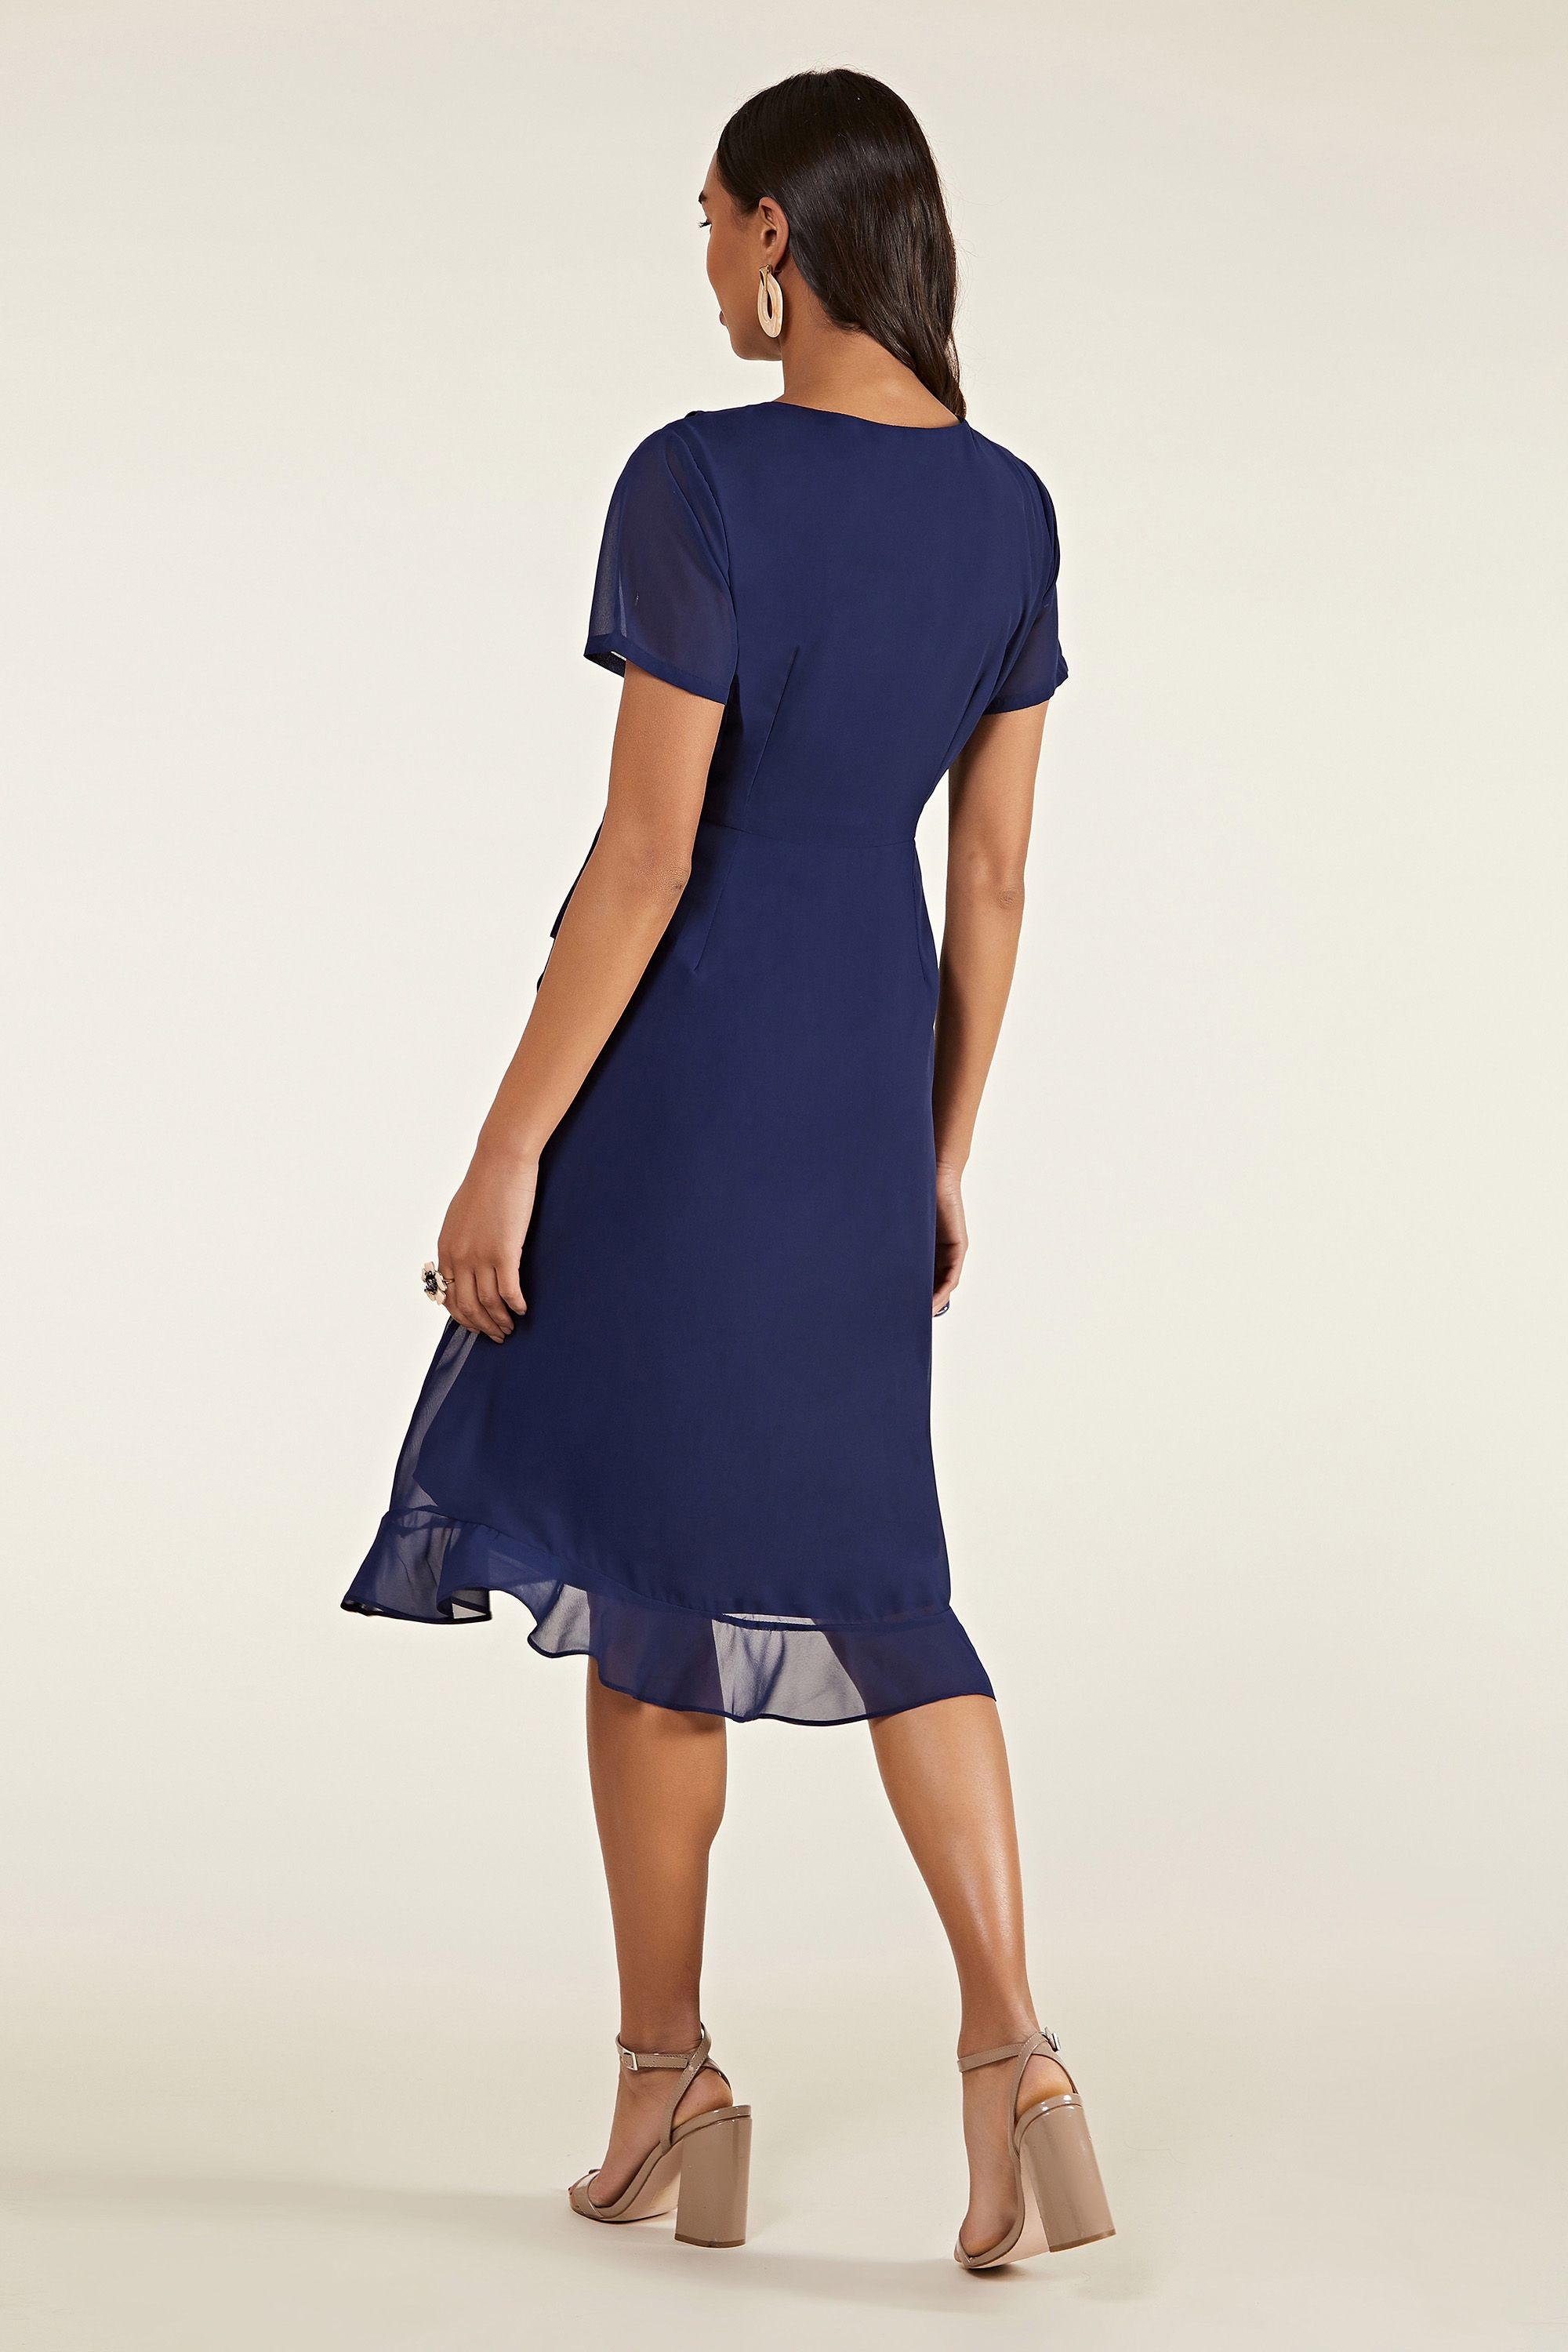 Navy Frill Wrap Dress With Tassel Detail